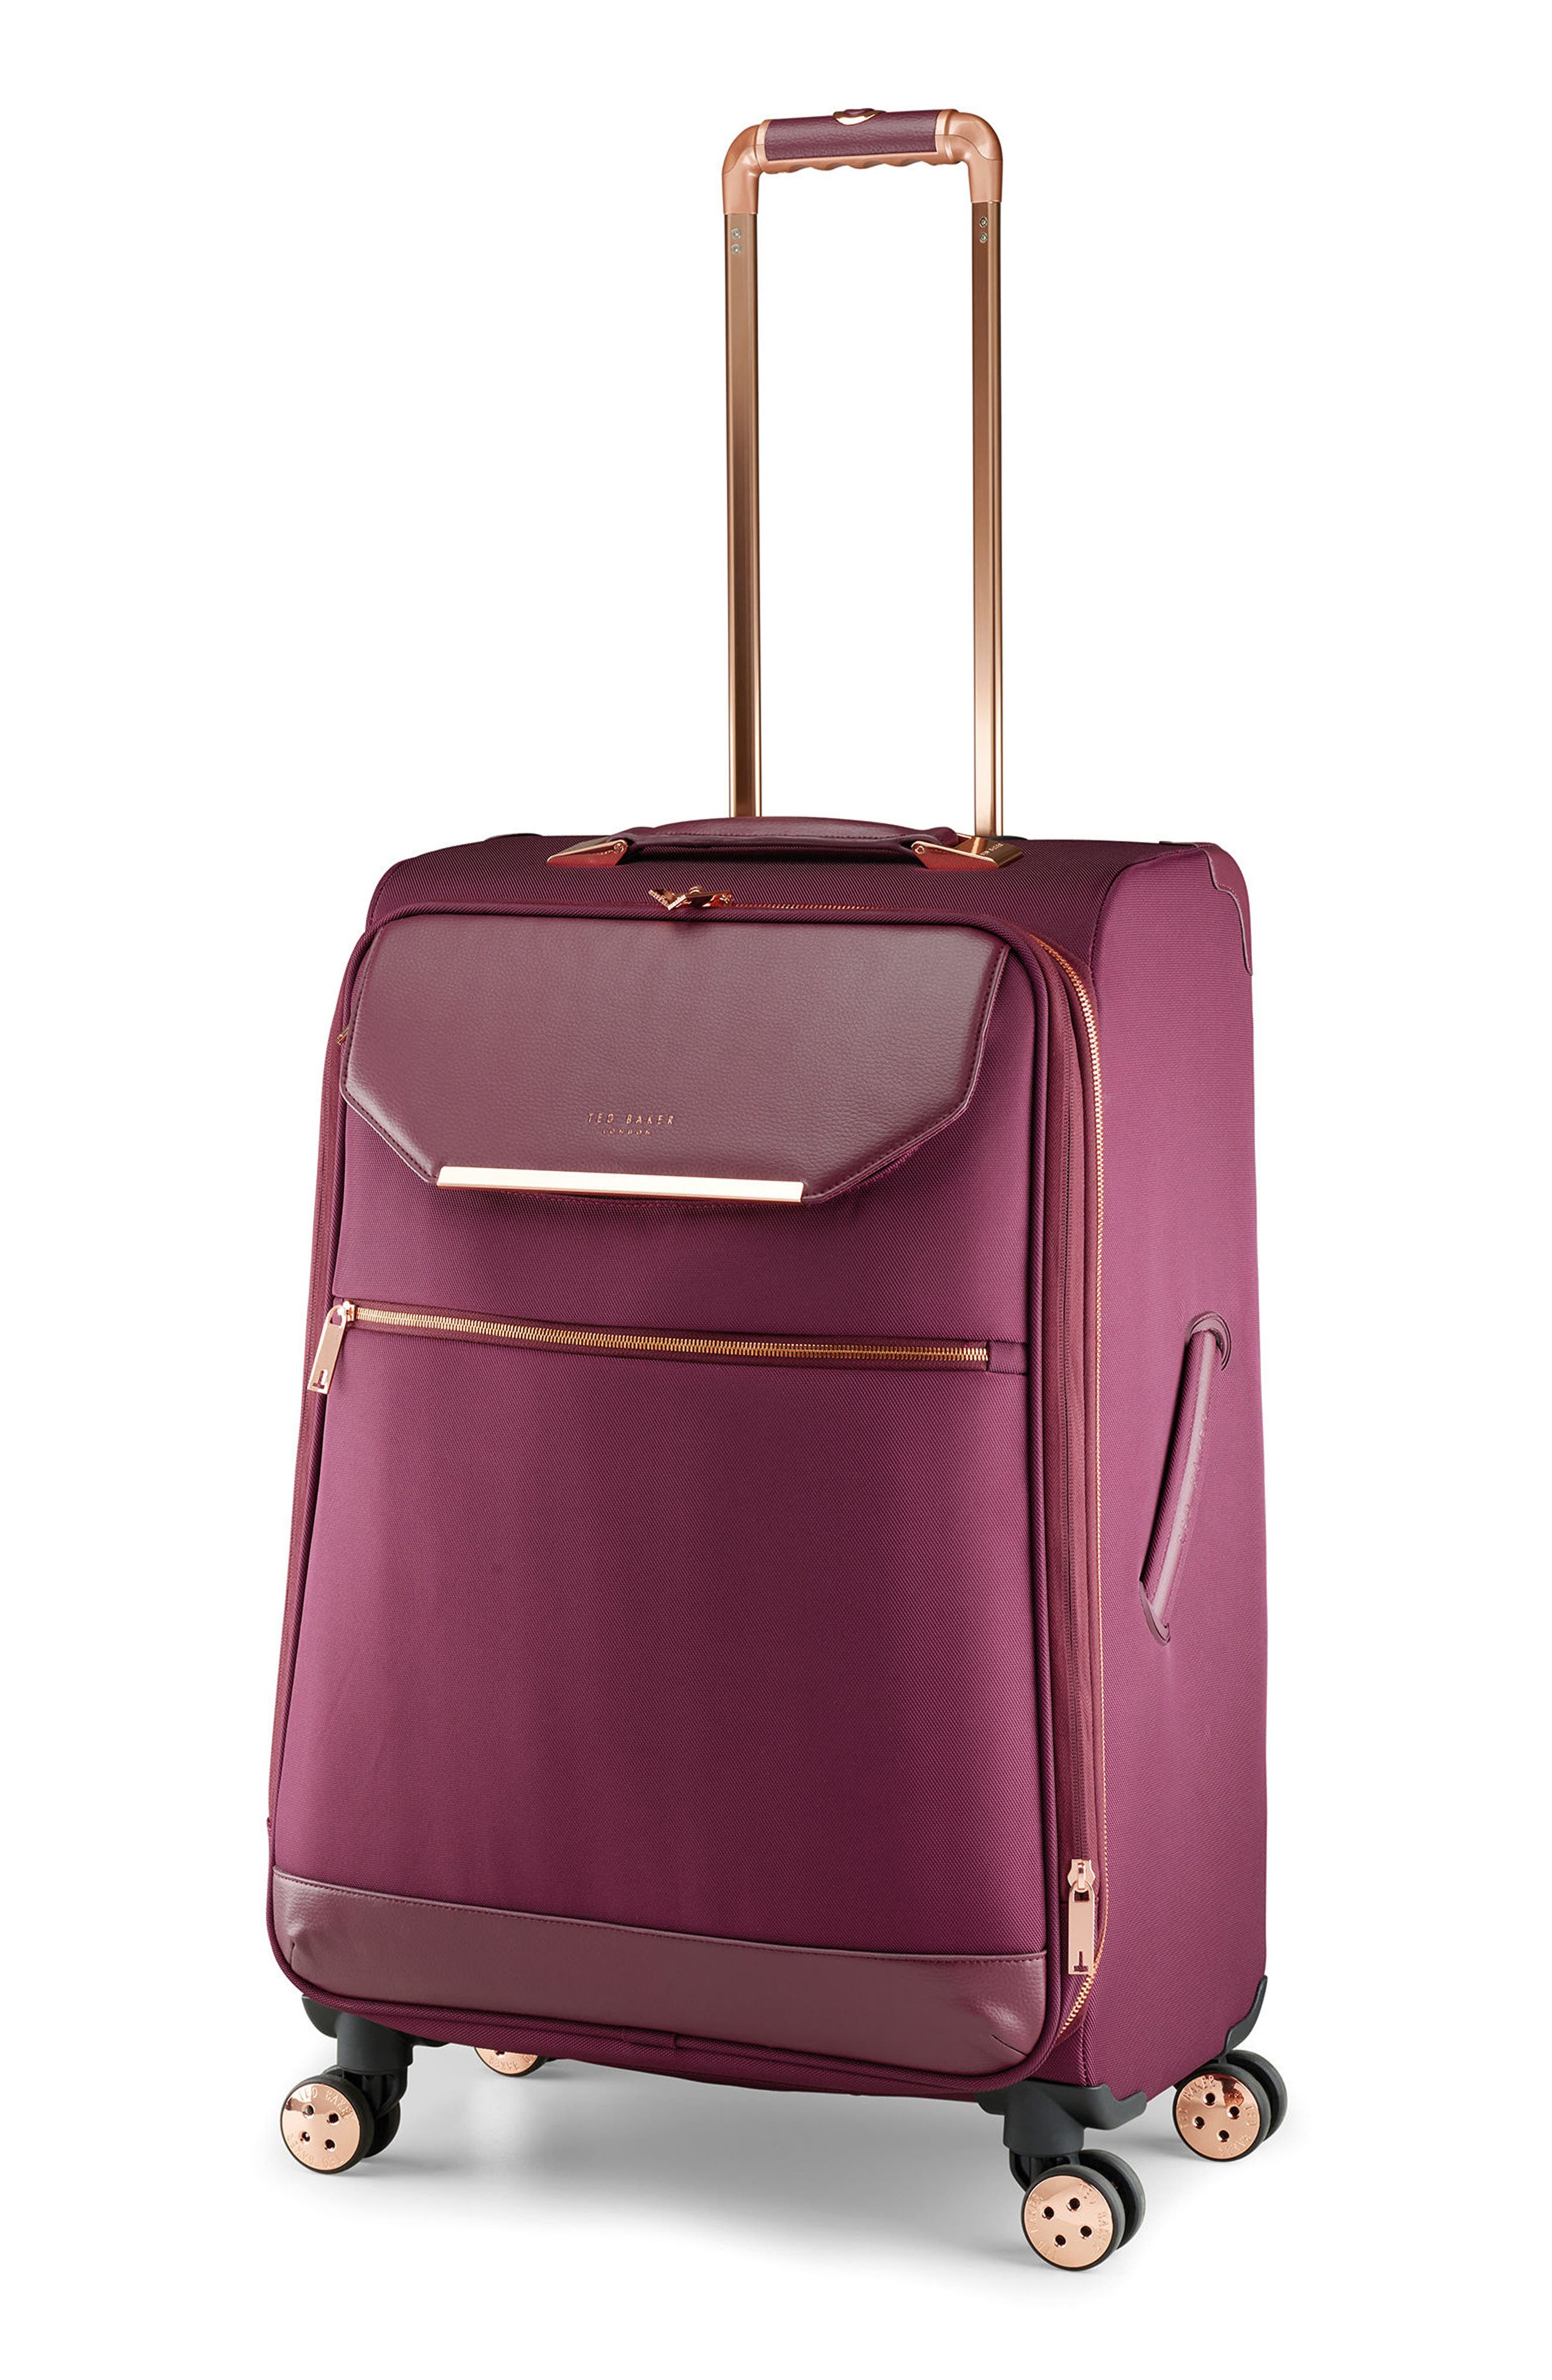 28-Inch Spinner Trolley Packing Case,                             Alternate thumbnail 3, color,                             Burgundy